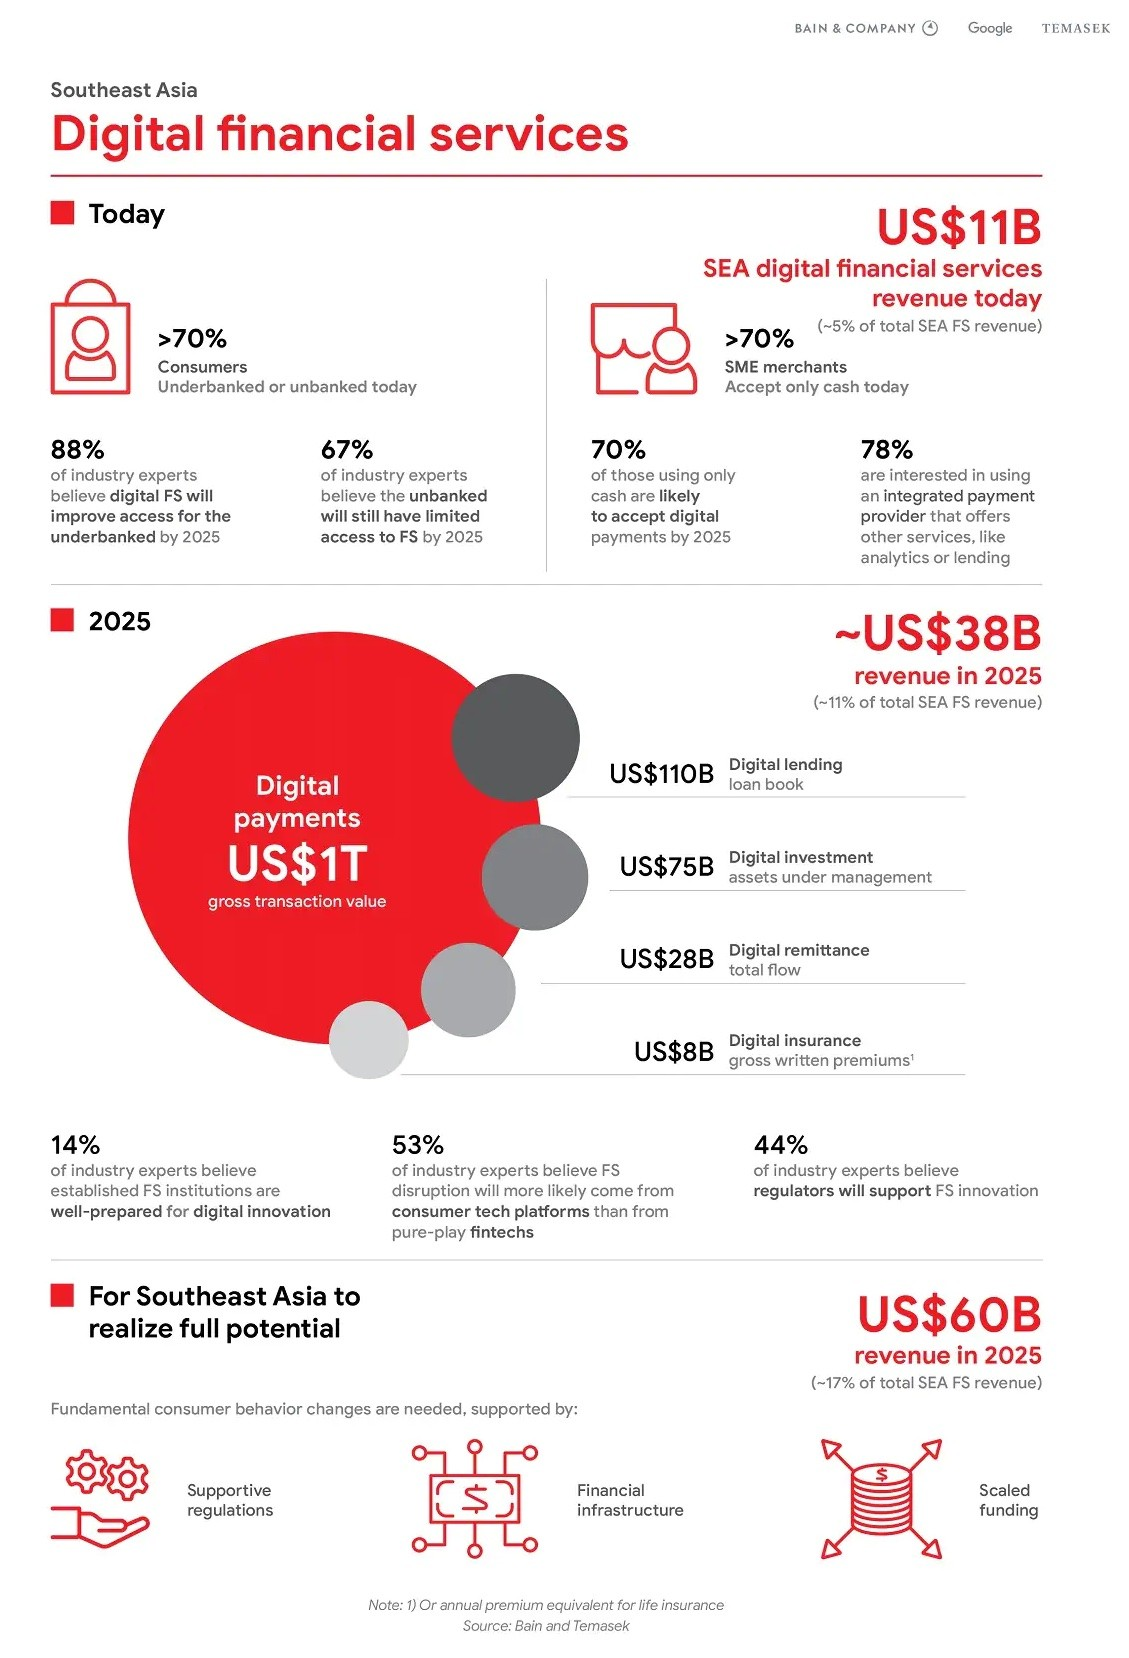 Southeast Asia Digital Financial Services infographic, Source: Bain and Company, Google and Temasek